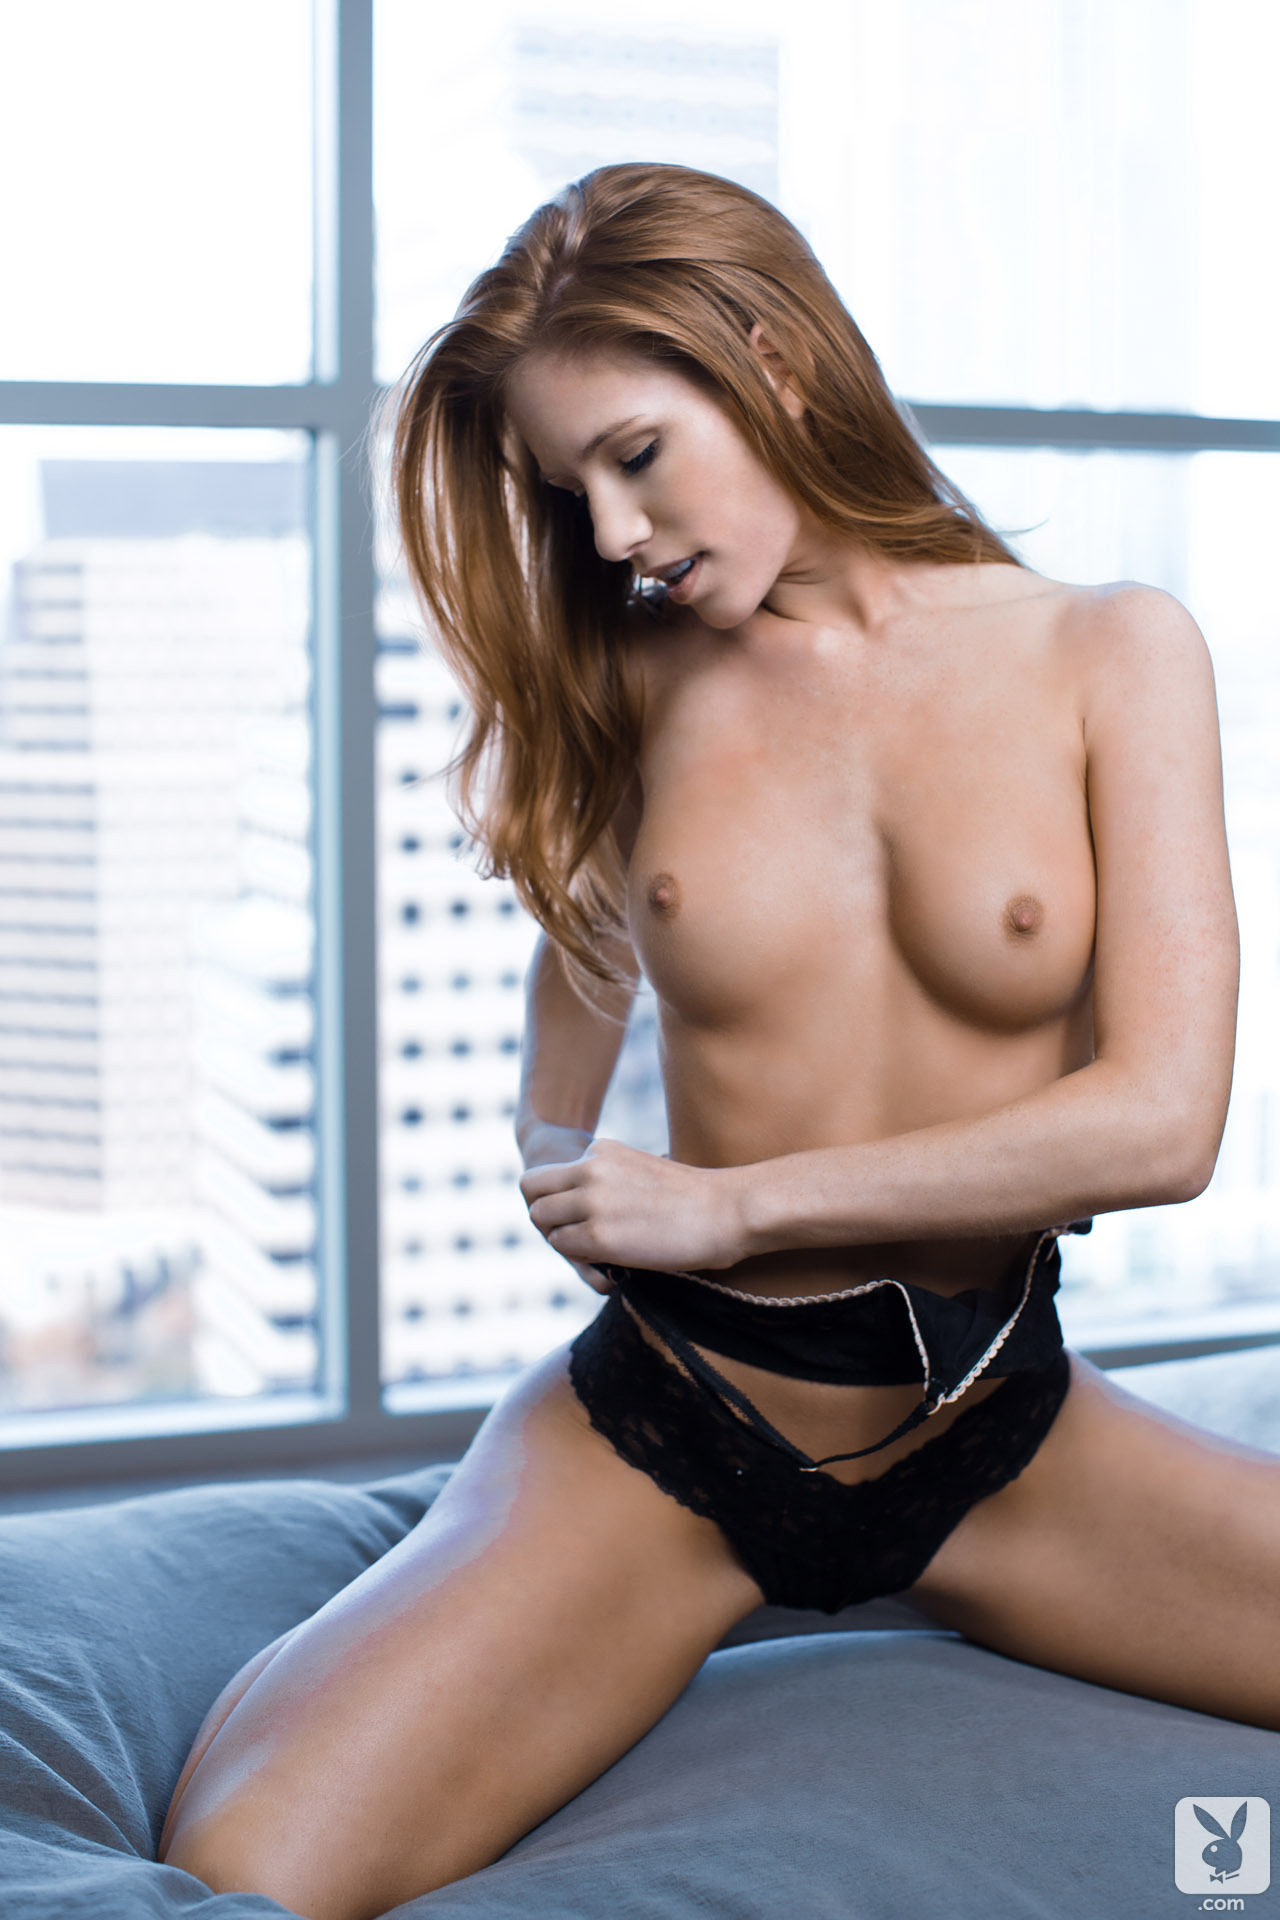 bree-morgan-nude-apartment-redhead-playboy-04